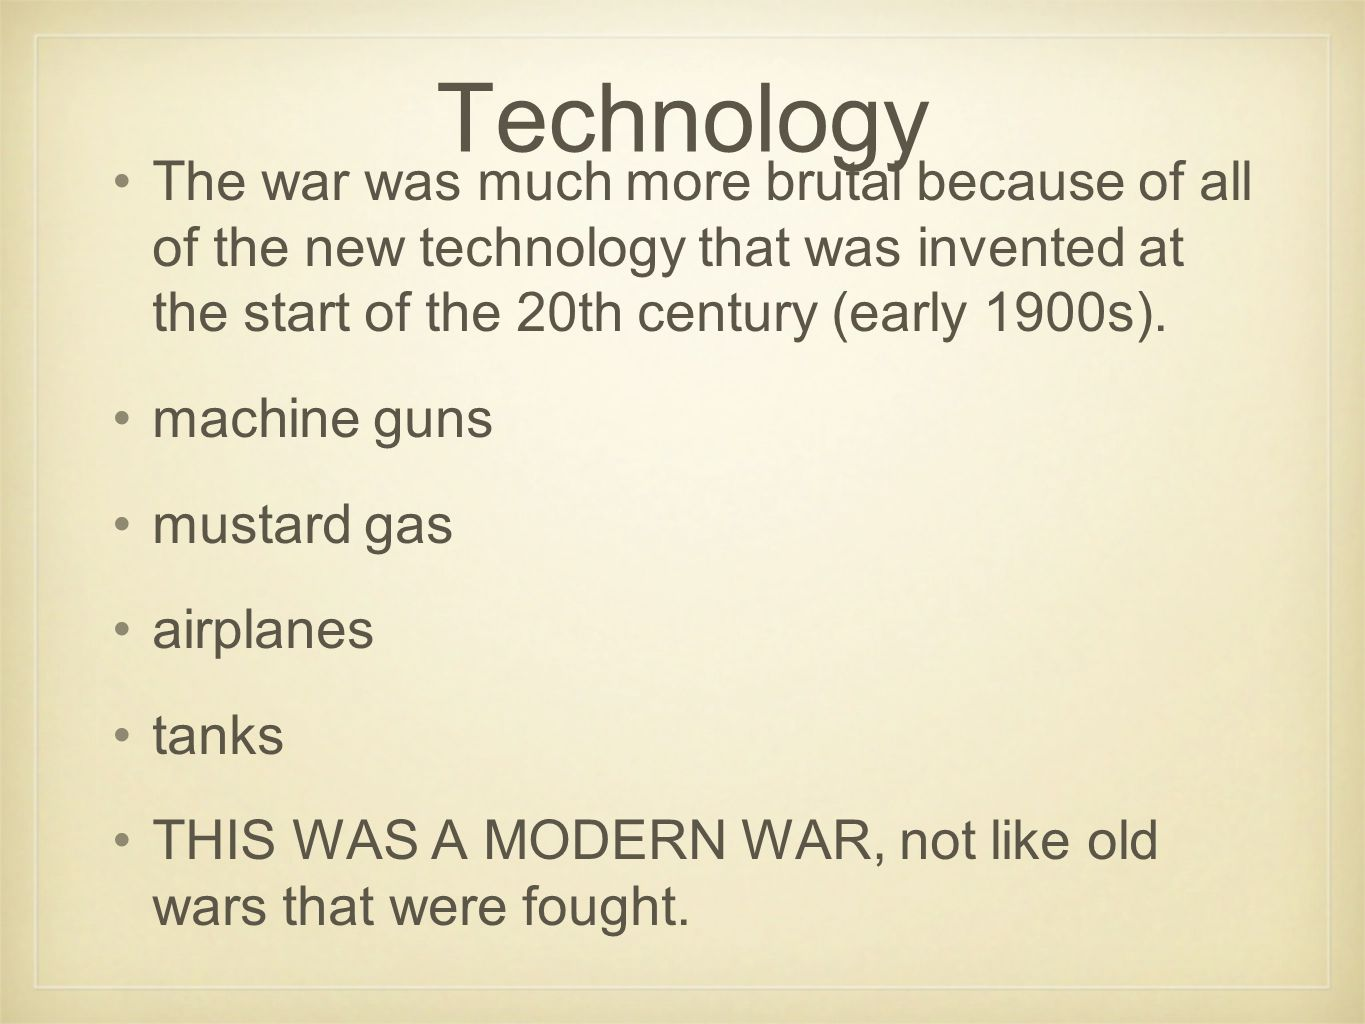 Technology The war was much more brutal because of all of the new technology that was invented at the start of the 20th century (early 1900s).